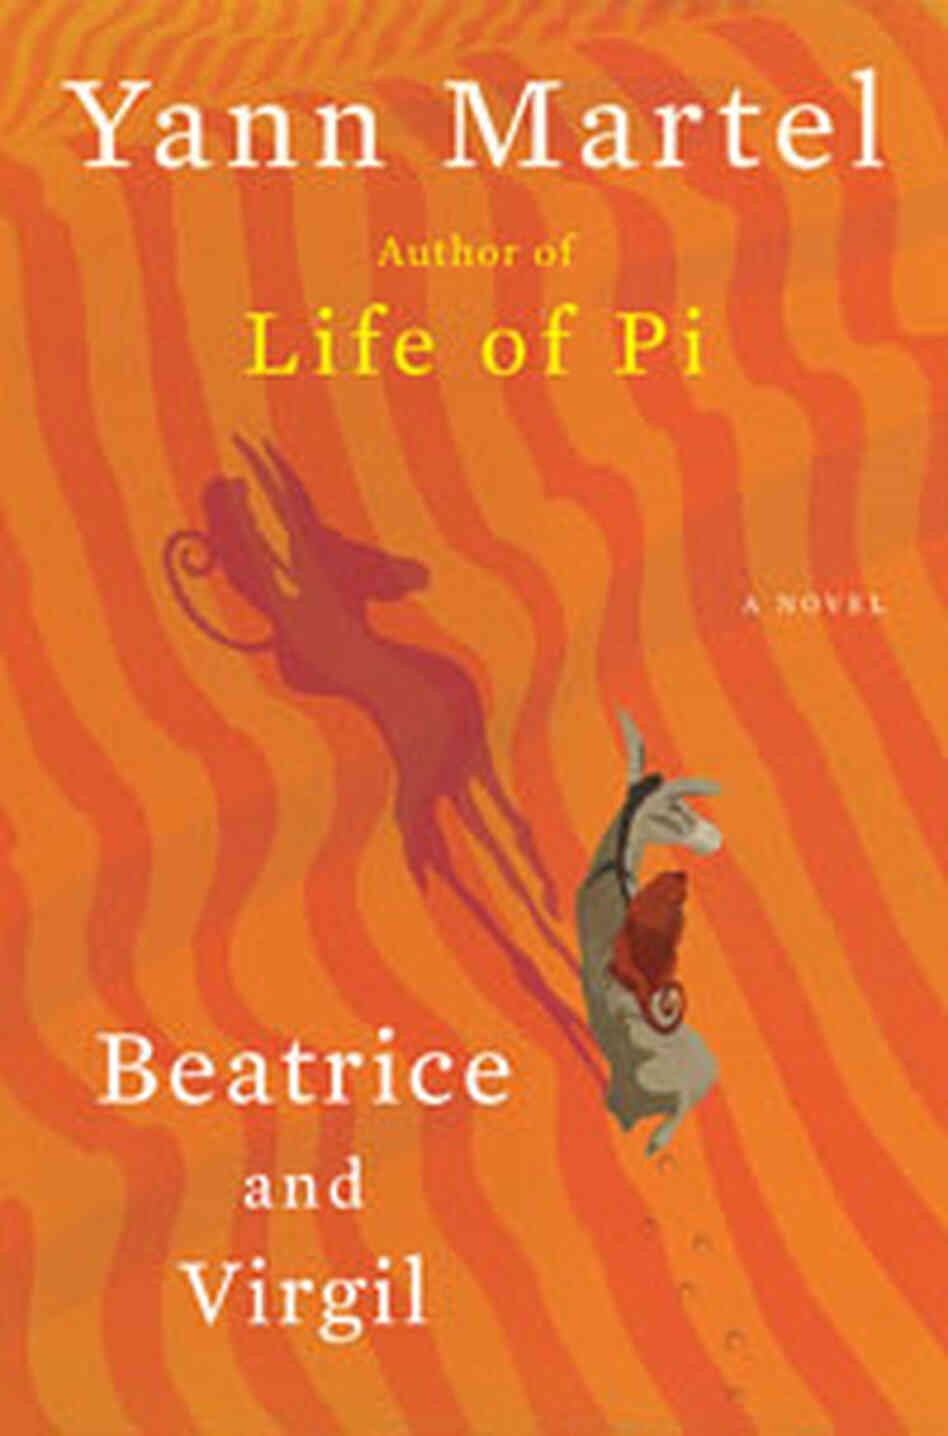 a short review of the life of pi a novel by yann martel Host john ydstie talks to canadian author yann martel about his novel life of pi, which won britain's mann-booker prize this year it's a meditation on the.